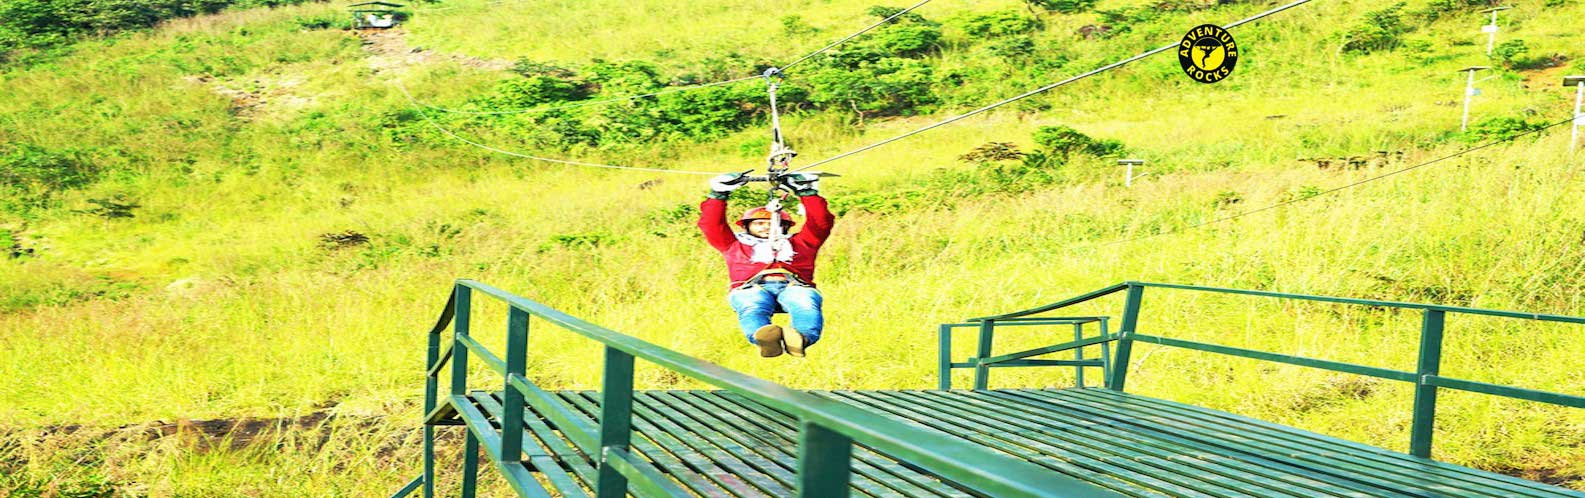 Zip Line Manufacturers in Bhilwara